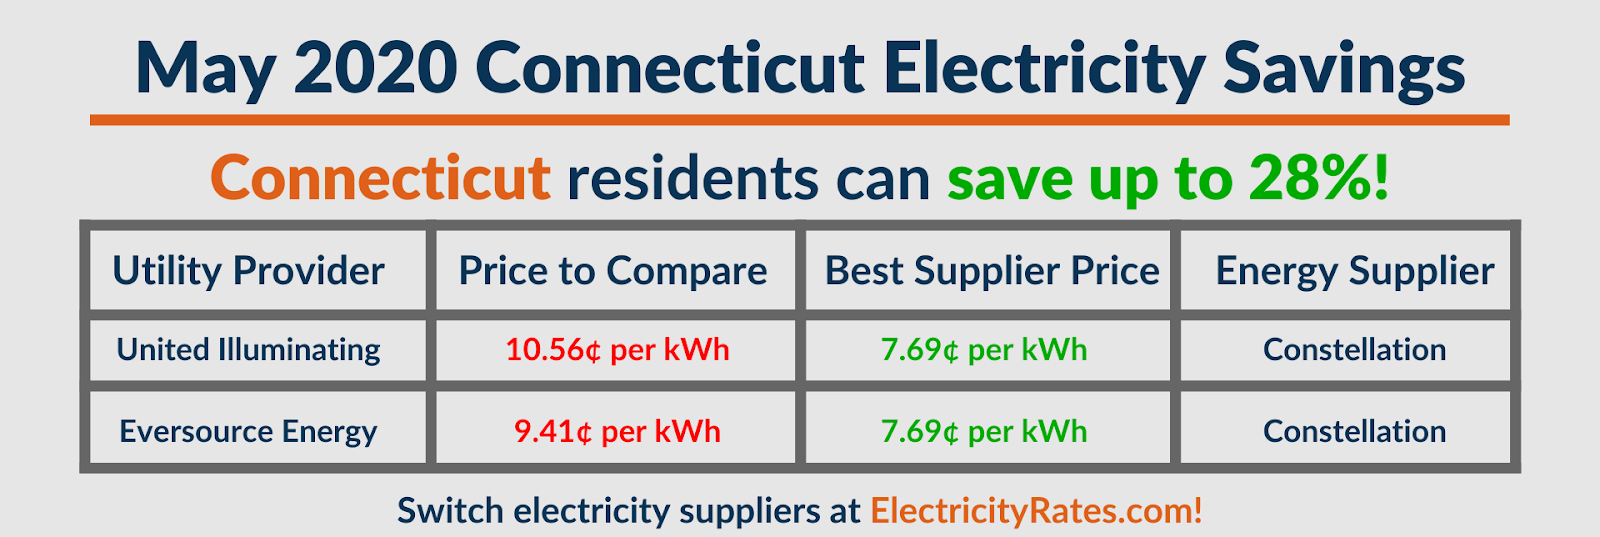 Graphic depicting May 2020 Connecticut savings by utility